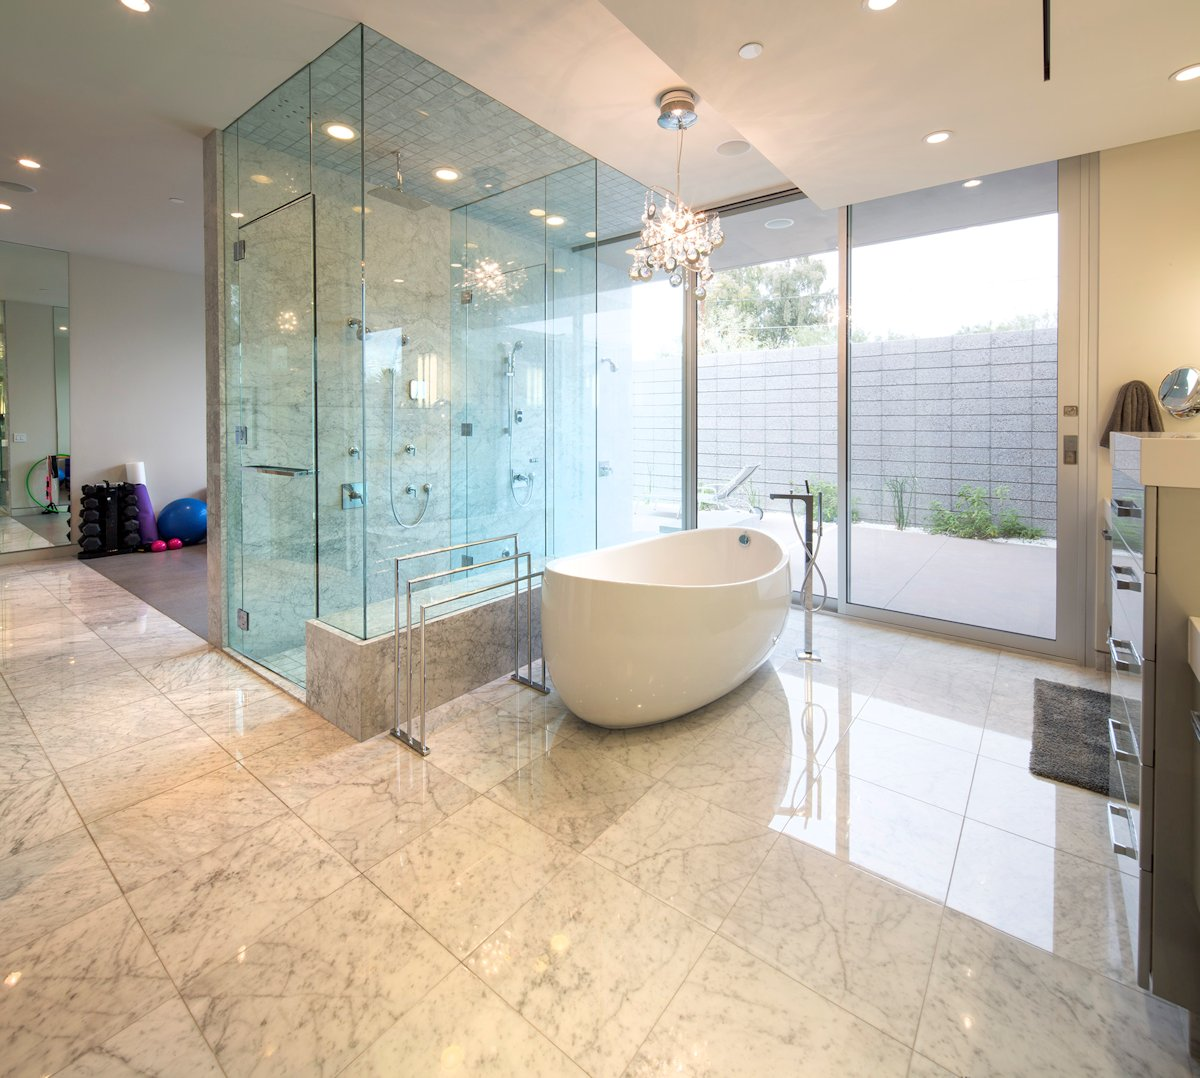 Glass Shower, Modern Bathroom, Mid-Century Modern Home in Scottsdale, Arizona